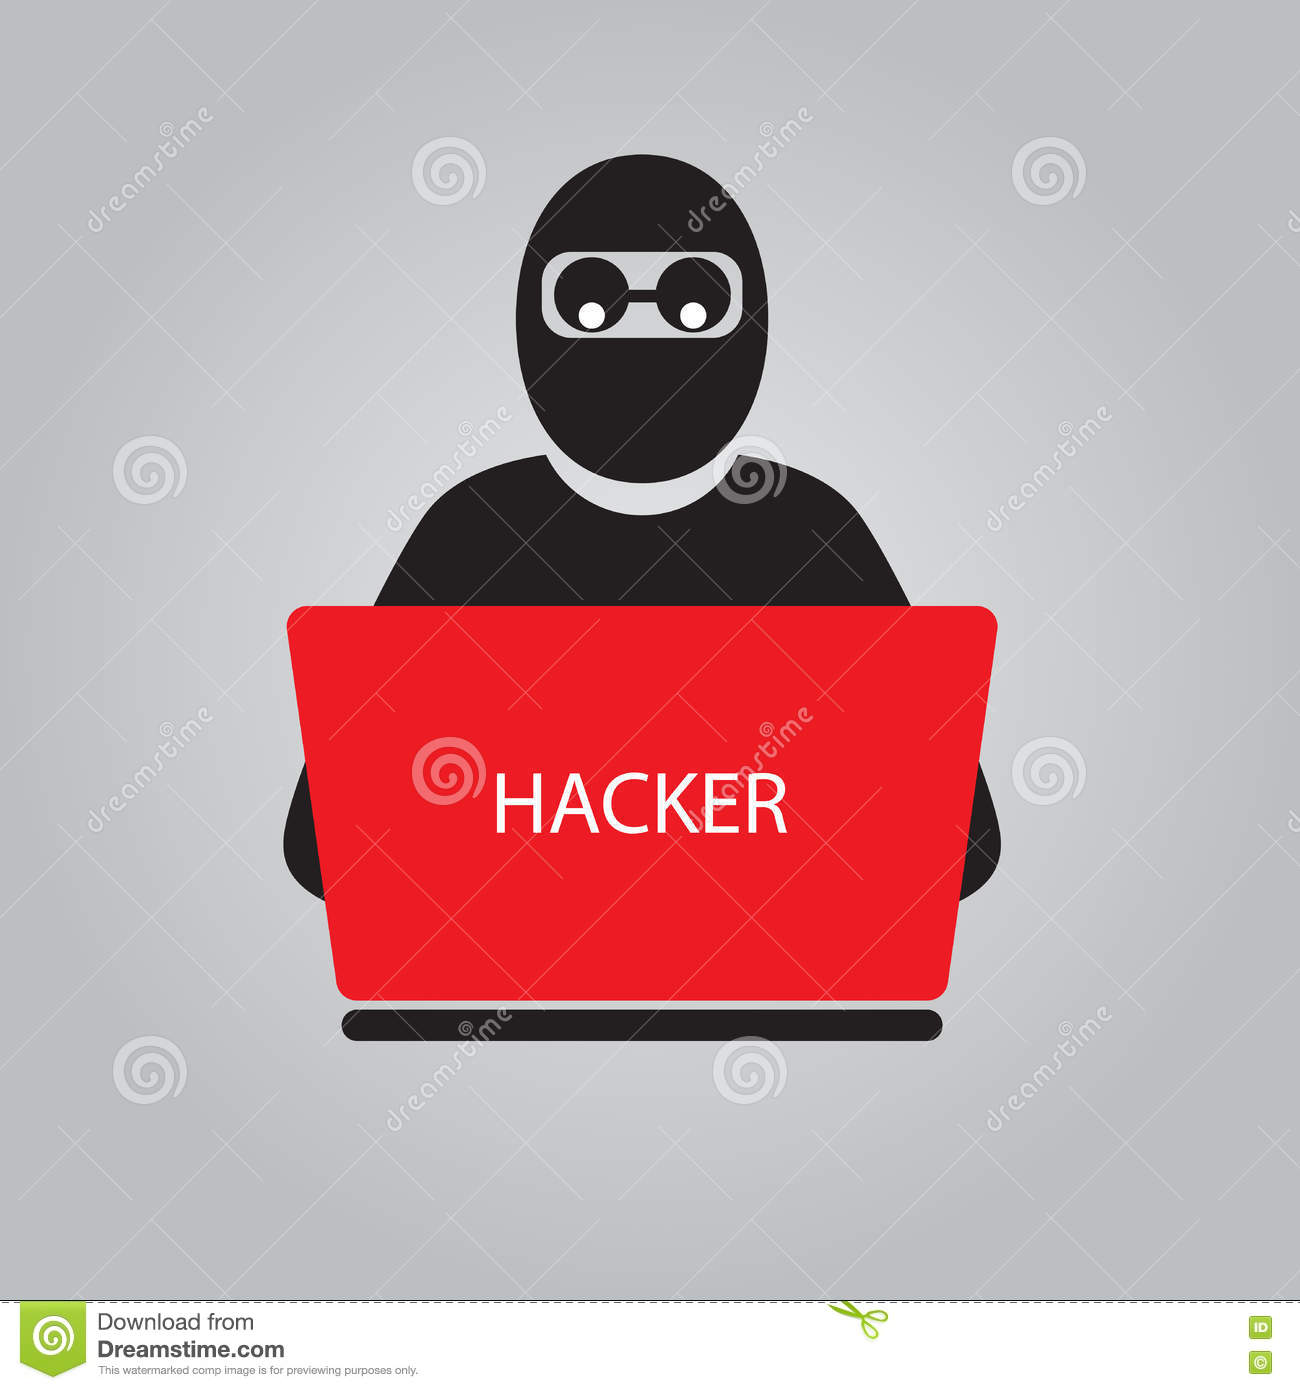 Icon of hacker with big laptop.